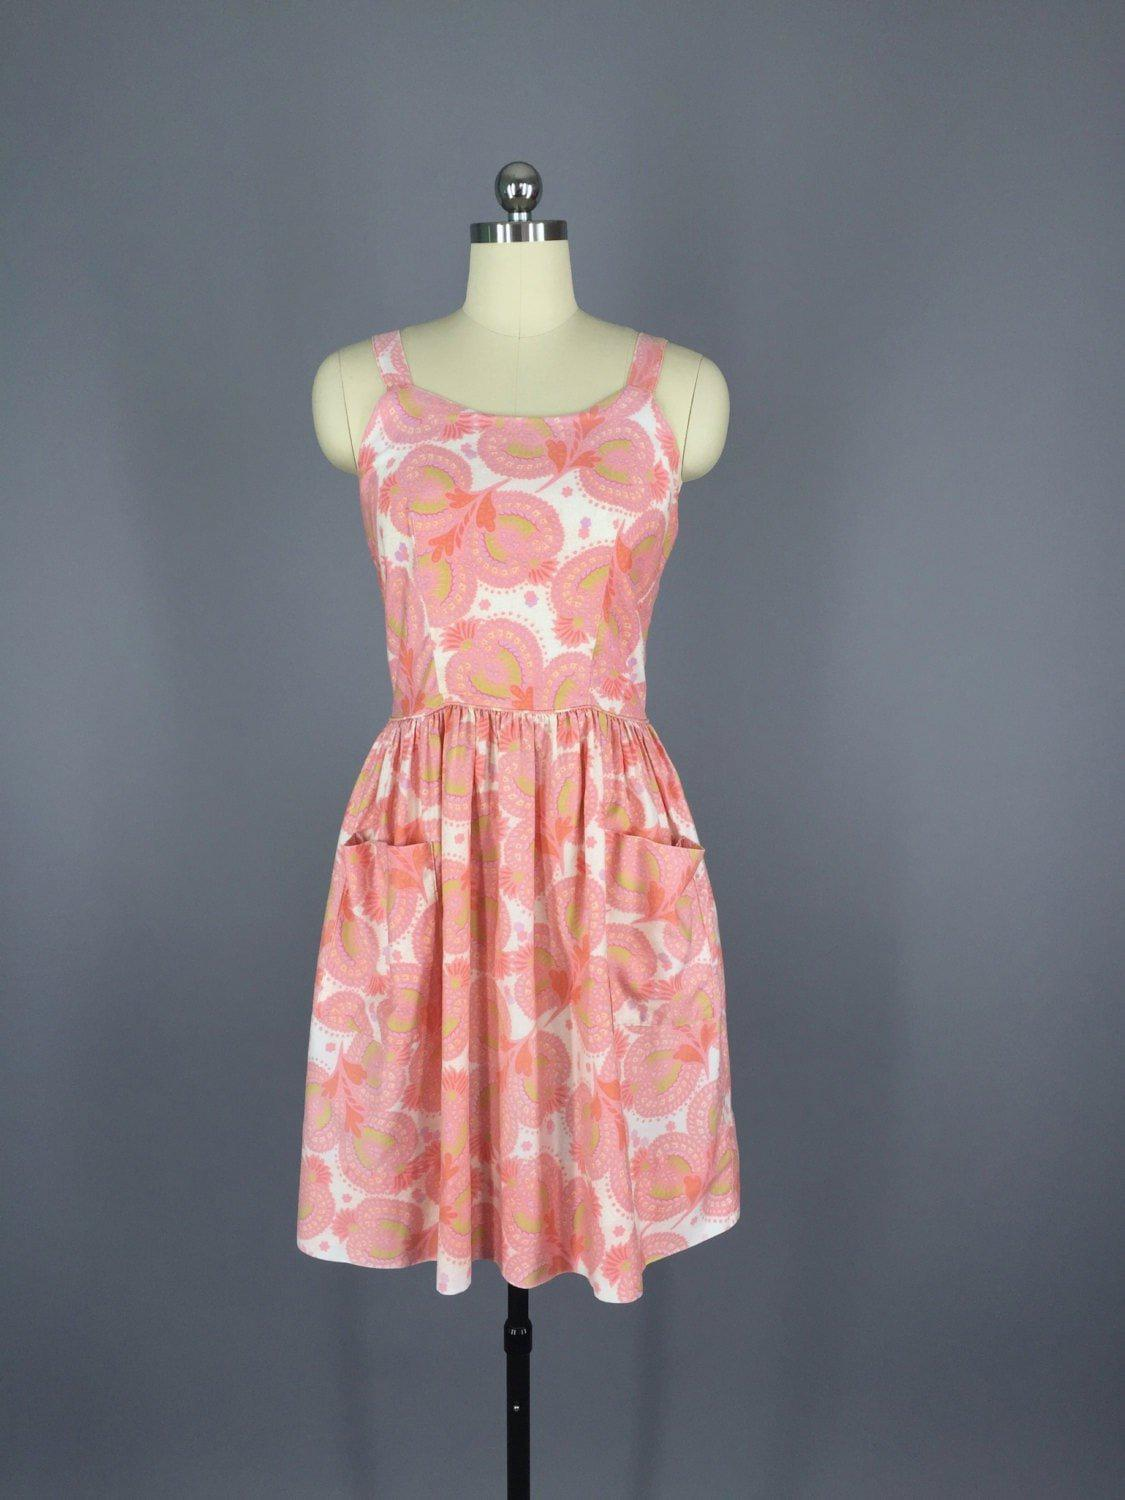 1950s Vintage Pink Sundress Dress ThisBlueBird